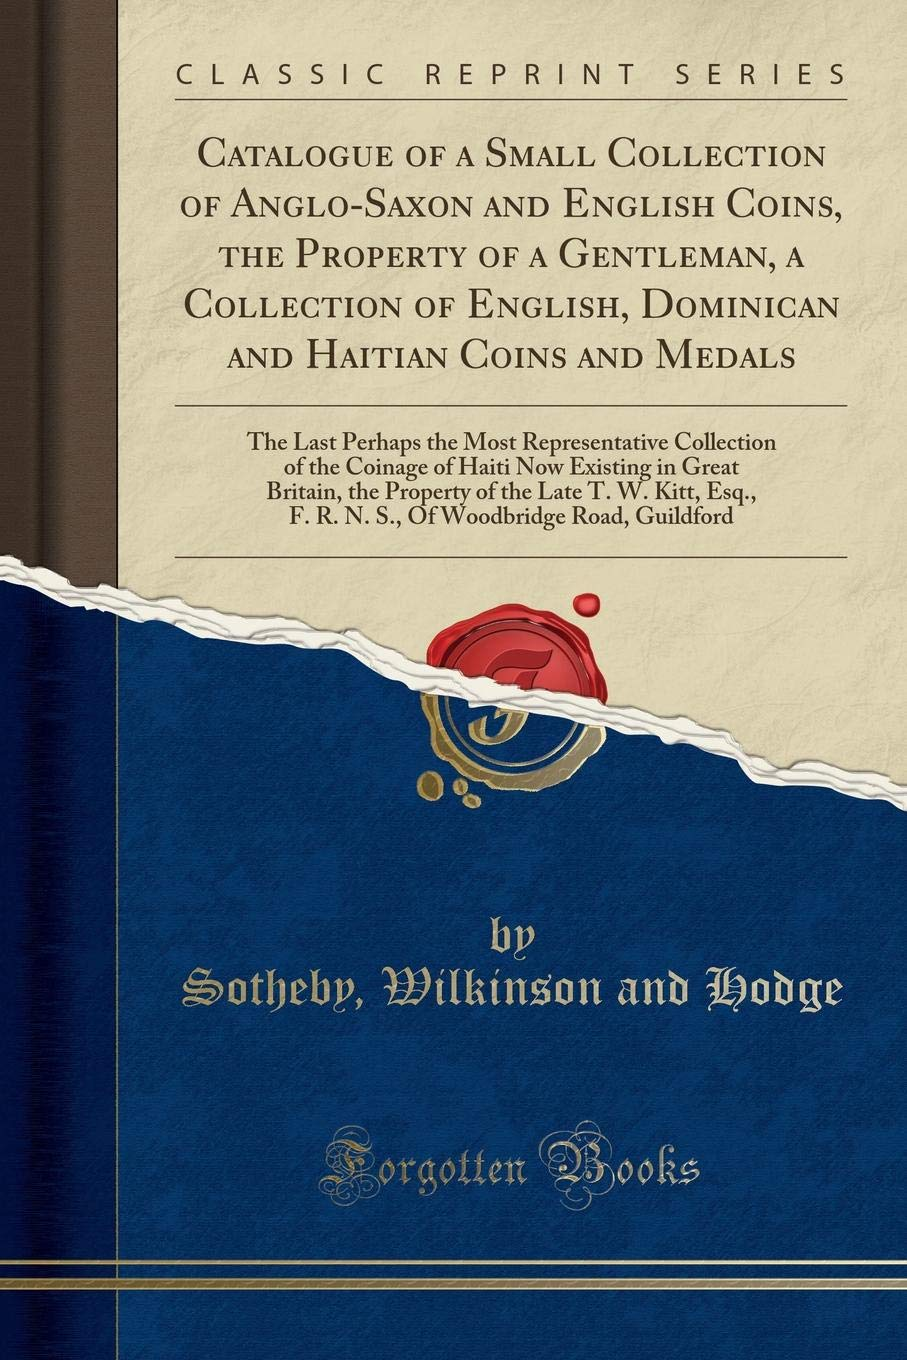 Catalogue of a Small Collection of Anglo-Saxon and English Coins, the Property of a Gentleman, a Collection of English, Dominican and Haitian Coins ... of the Coinage of Haiti Now Existing in GRE